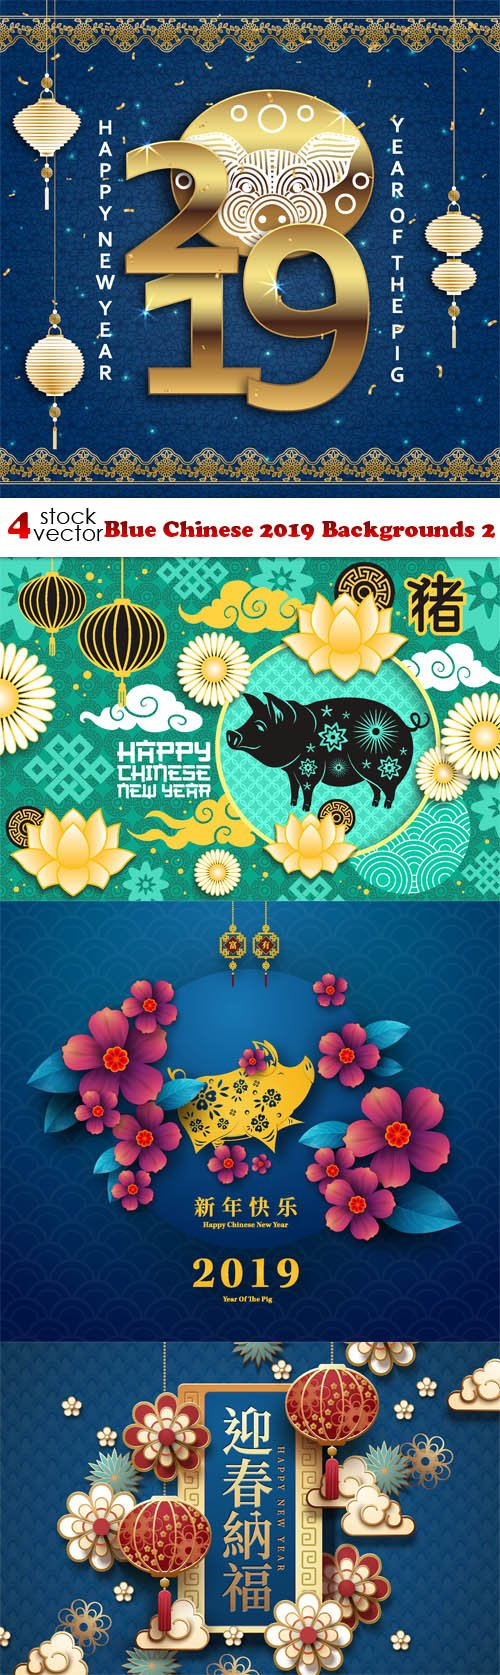 Vectors - Blue Chinese 2019 Backgrounds 2